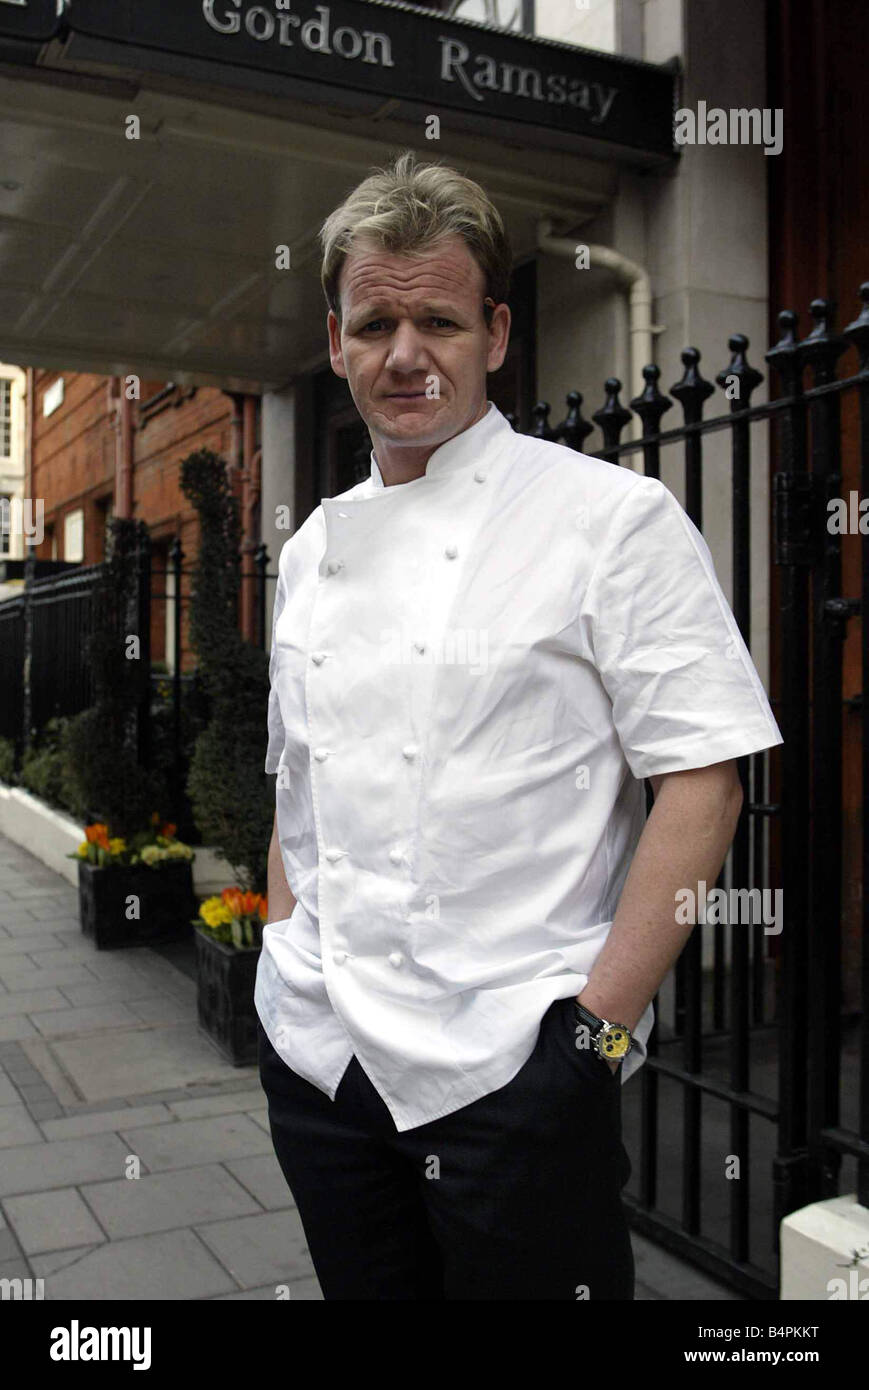 Gordon Ramsay February 2003 Top Chef and restauranteur Gordon Ramsay at Claridges Hotel in London standing outside - Stock Image